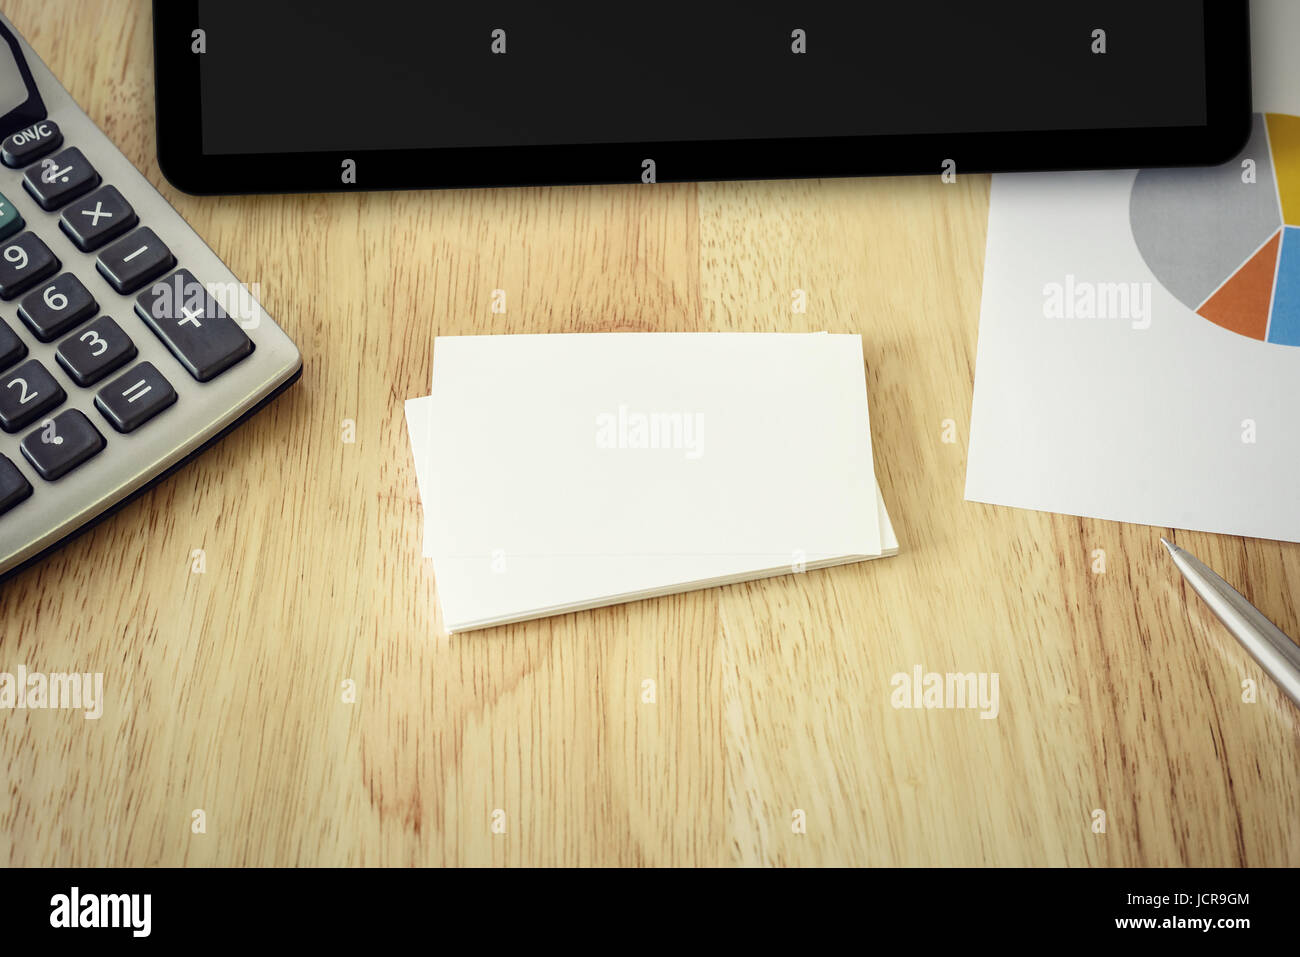 name card graph with calculator and tablet, vintage effect - Stock Image